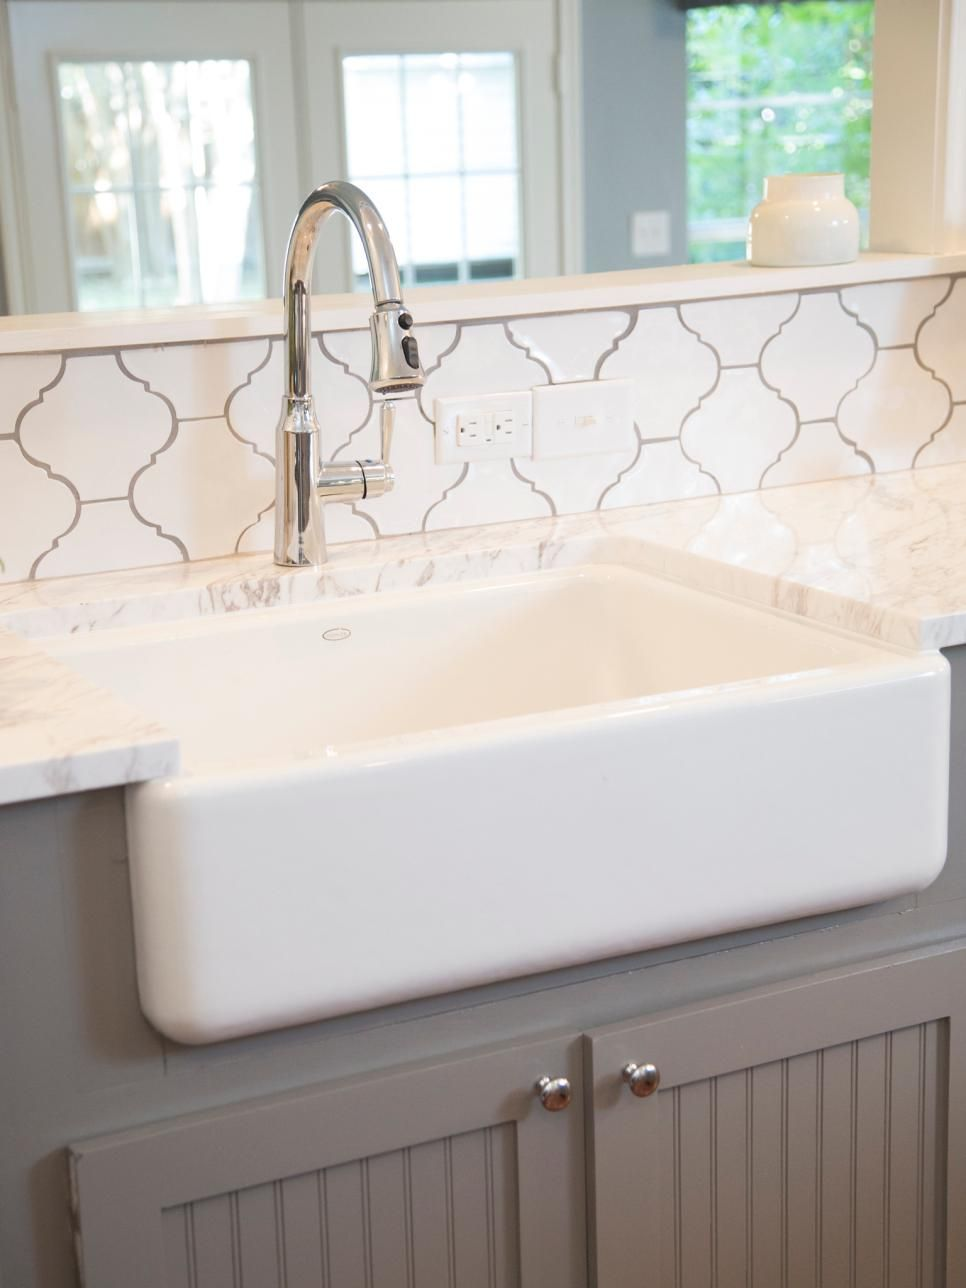 A Front And Farmhouse Style Sinks Lend Even The Newest Kitchen An Air Of History So It S No Wonder That Joanna Loves To Use Them In Her Renovations